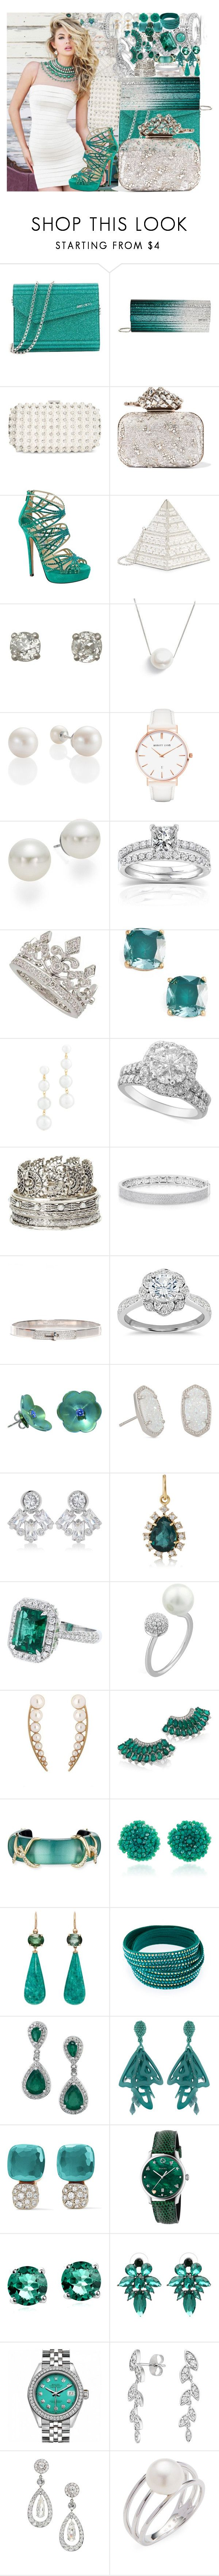 """""""Untitled #4570"""" by brooke-evans12 ❤ liked on Polyvore featuring Jimmy Choo, Sherri Hill, INC International Concepts, Judith Leiber, Chan Luu, Abbott Lyon, AK Anne Klein, Annello, Garrard and Kate Spade"""